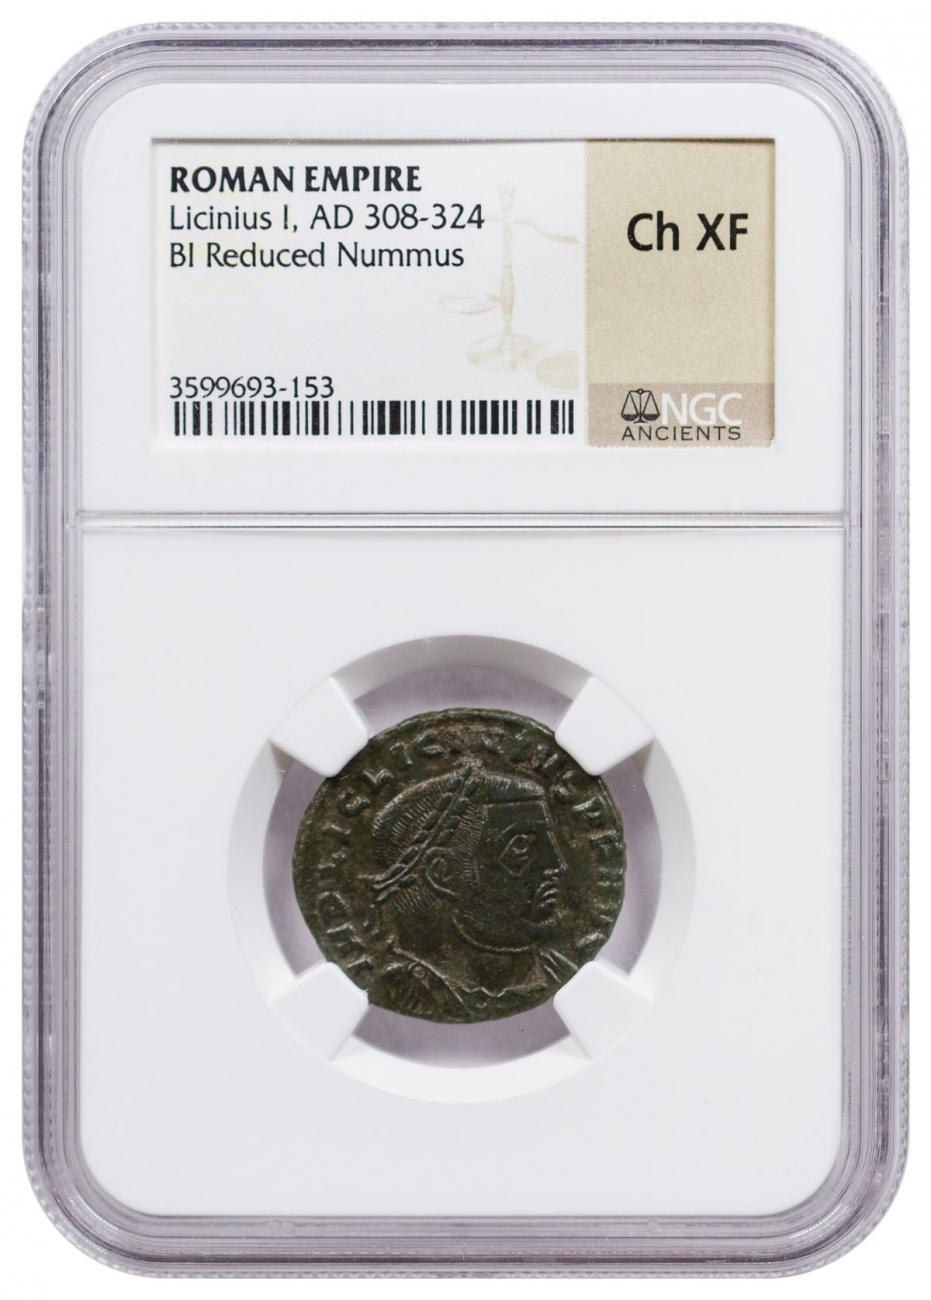 Roman Empire, Billon Reduced Nummus of Licinius (AD 308-324) NGC Ch. XF